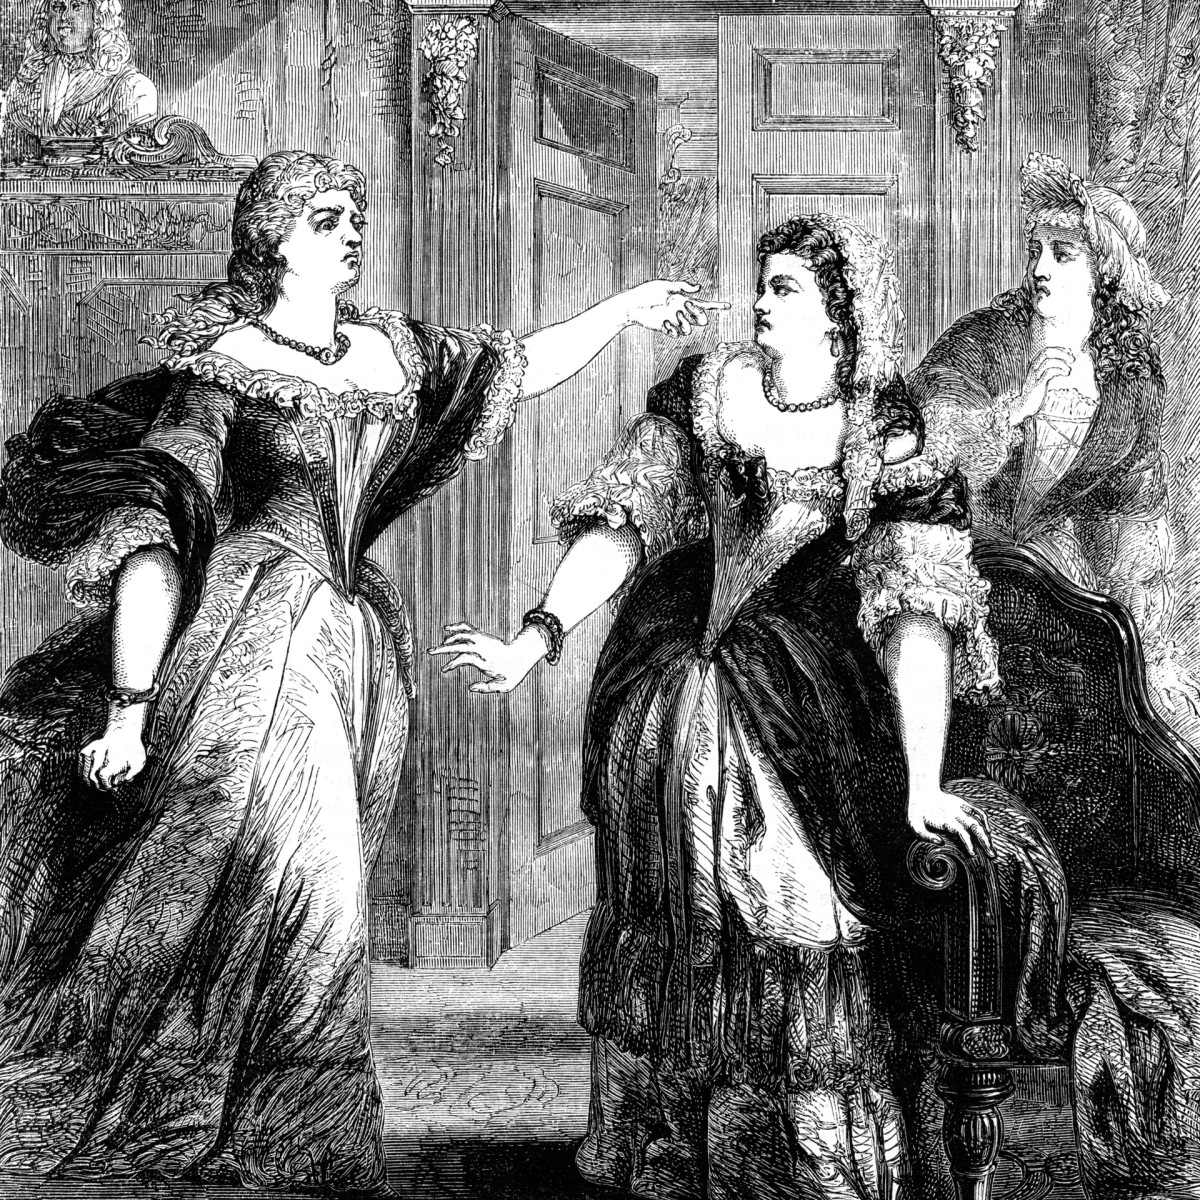 The Duchess of Marlborough upbraiding Queen Anne and Abigail Masham.